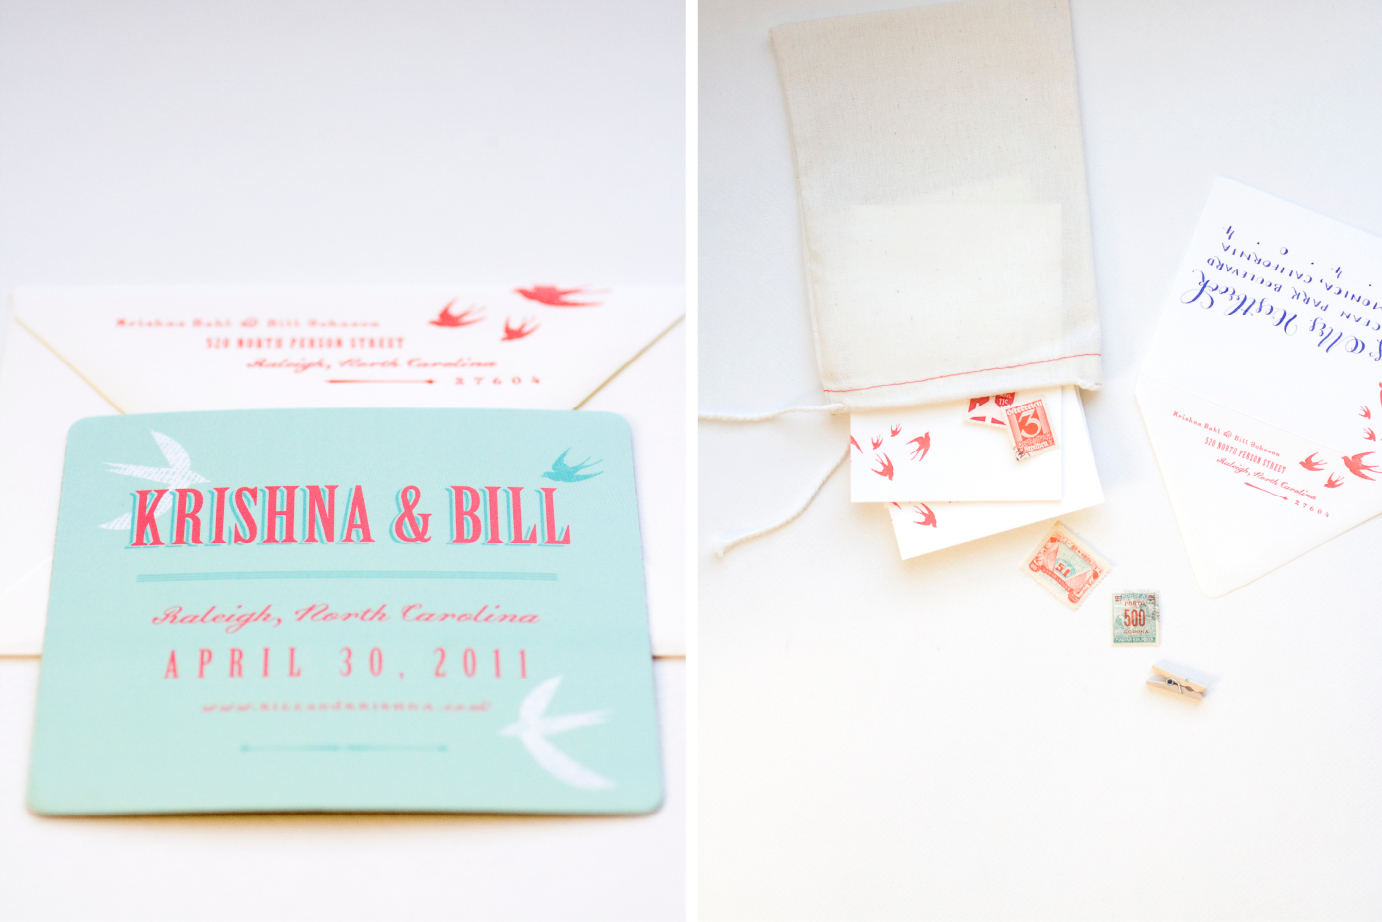 Wedding Invitation Business Cards Choice Image - Business Card Template